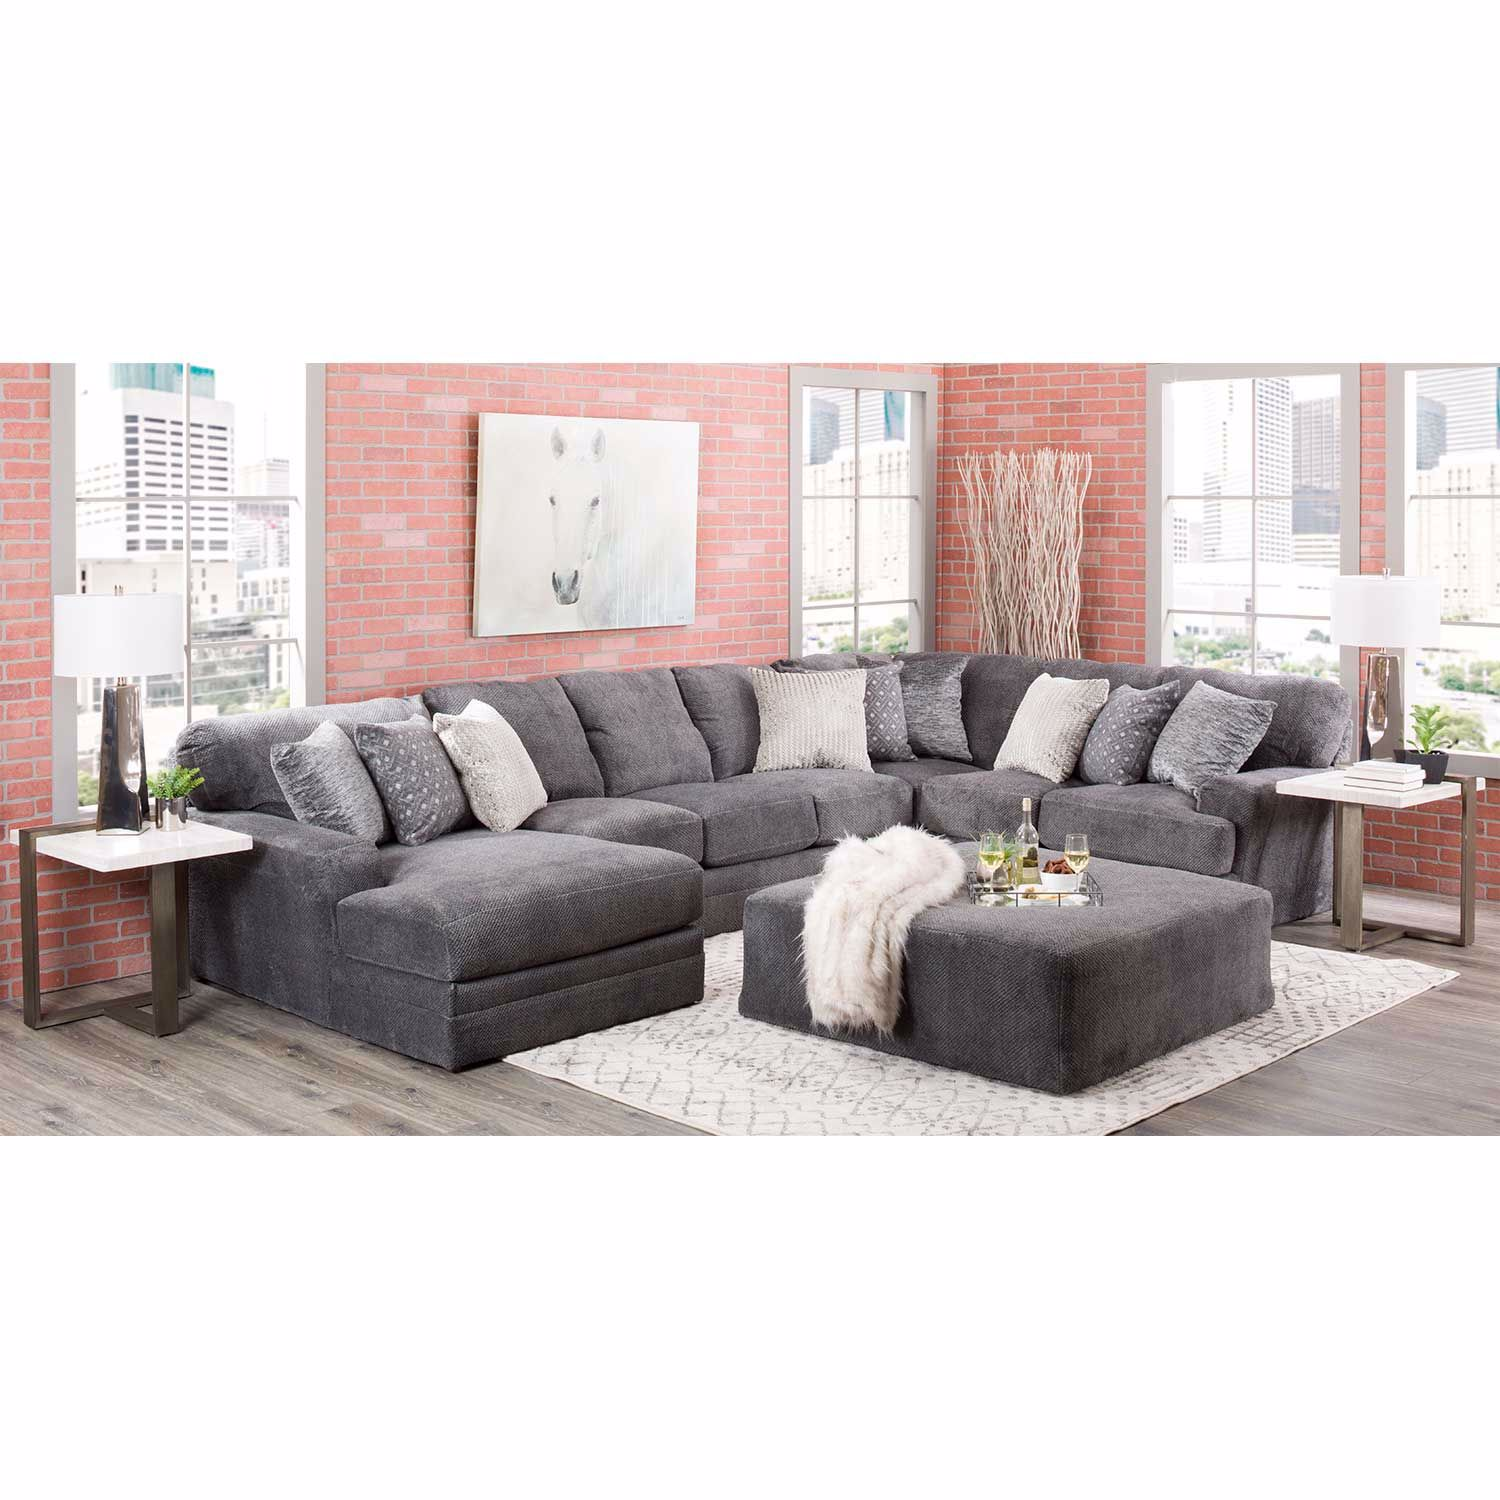 Picture of Mammoth 3 Piece Sectional with RAF Chaise